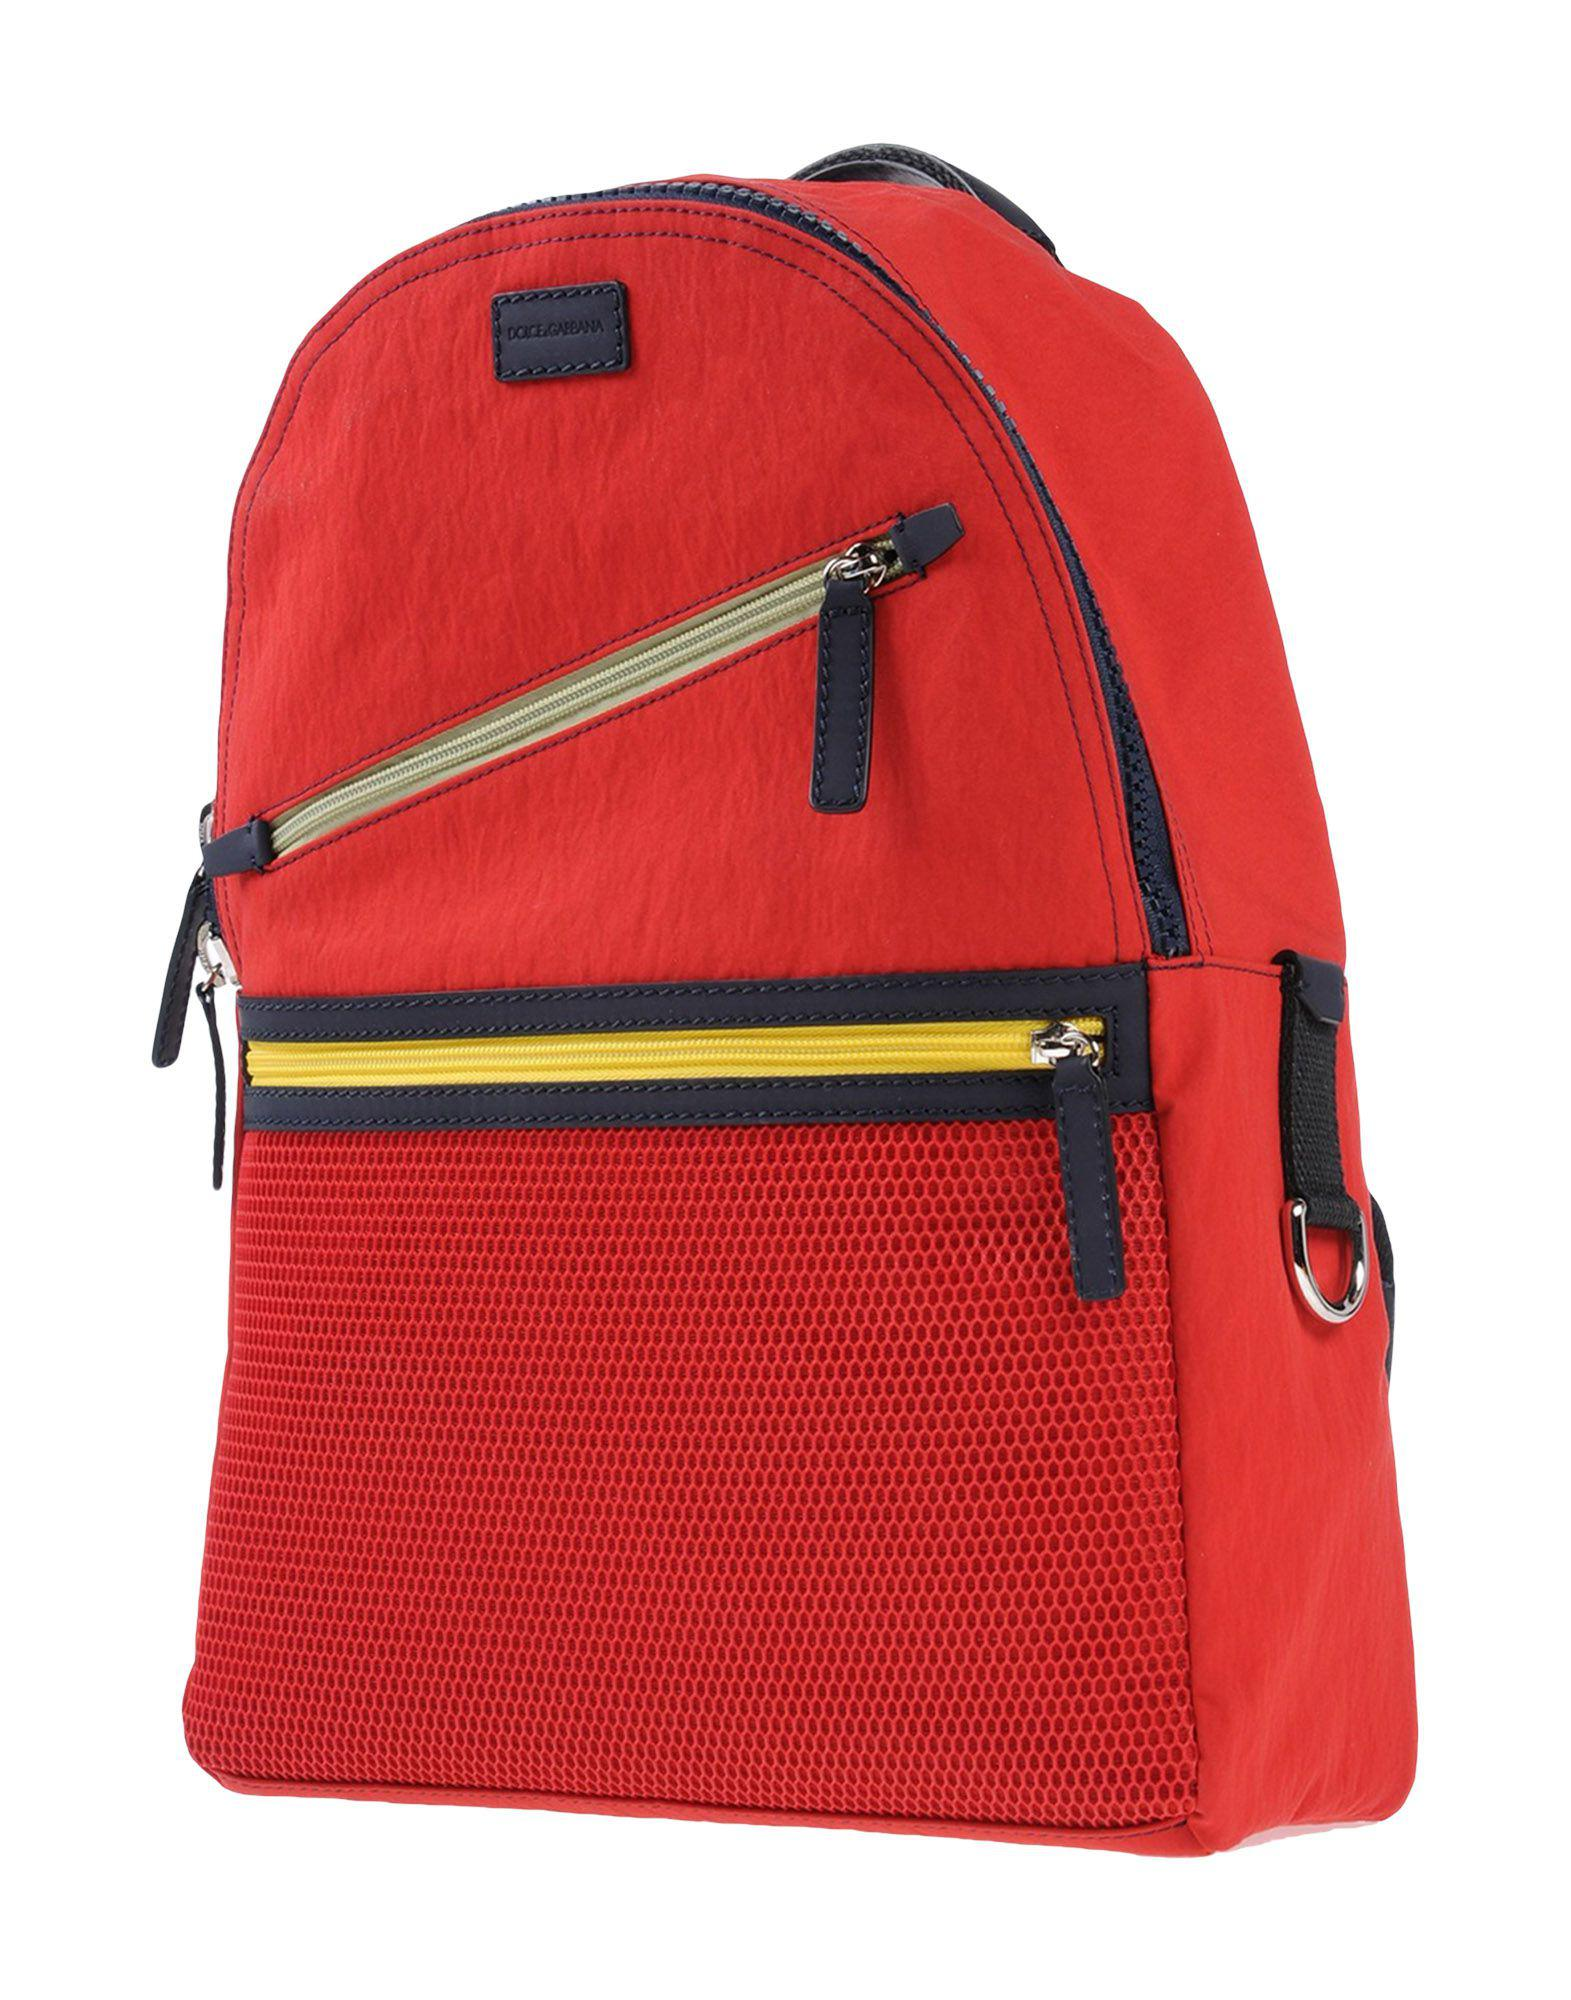 8d1f35bfeb67 Lyst - Dolce   Gabbana Backpacks   Bum Bags in Red for Men